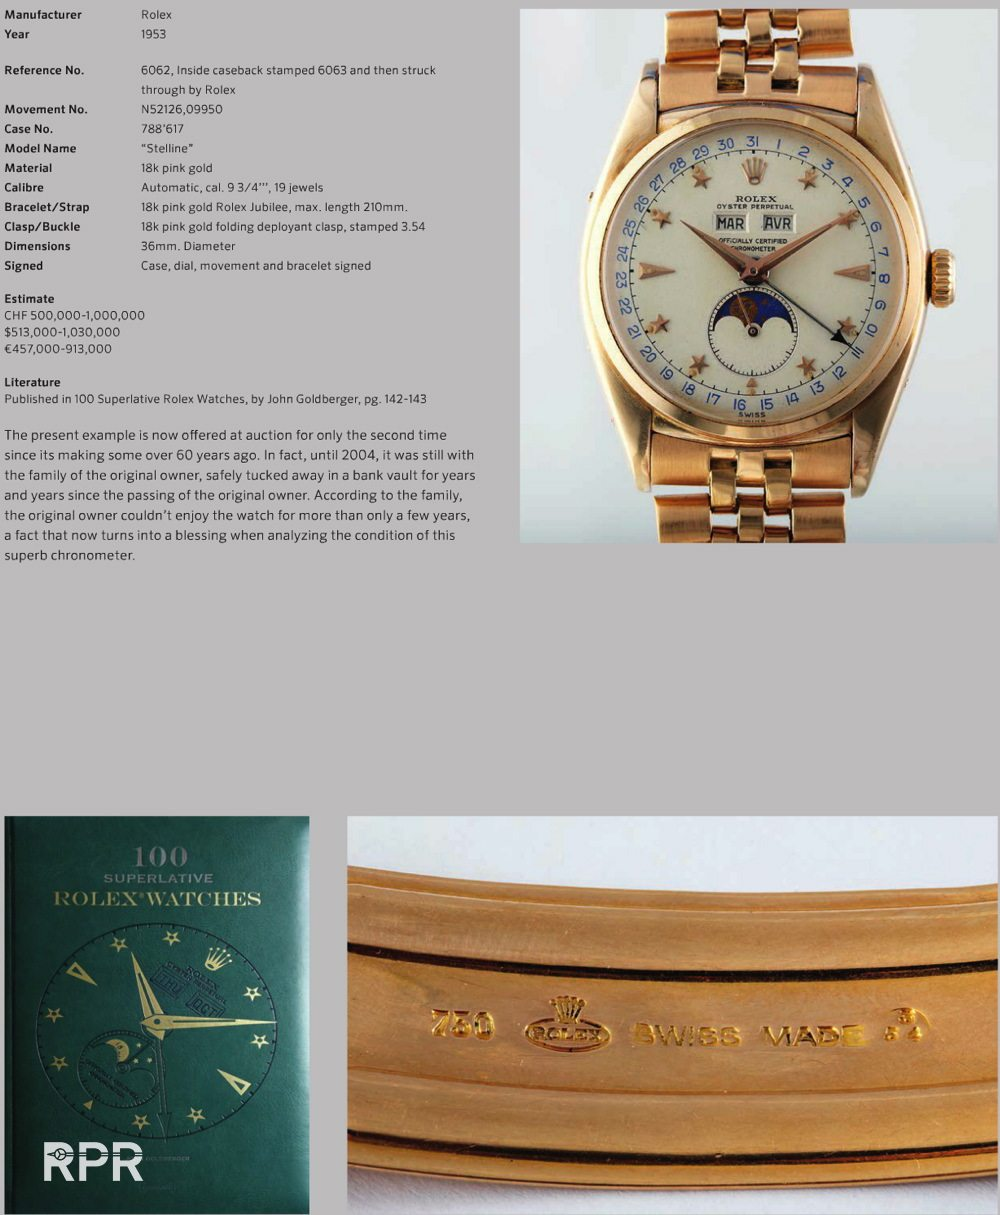 RPR_Rolex_geneva_auction_2015_22